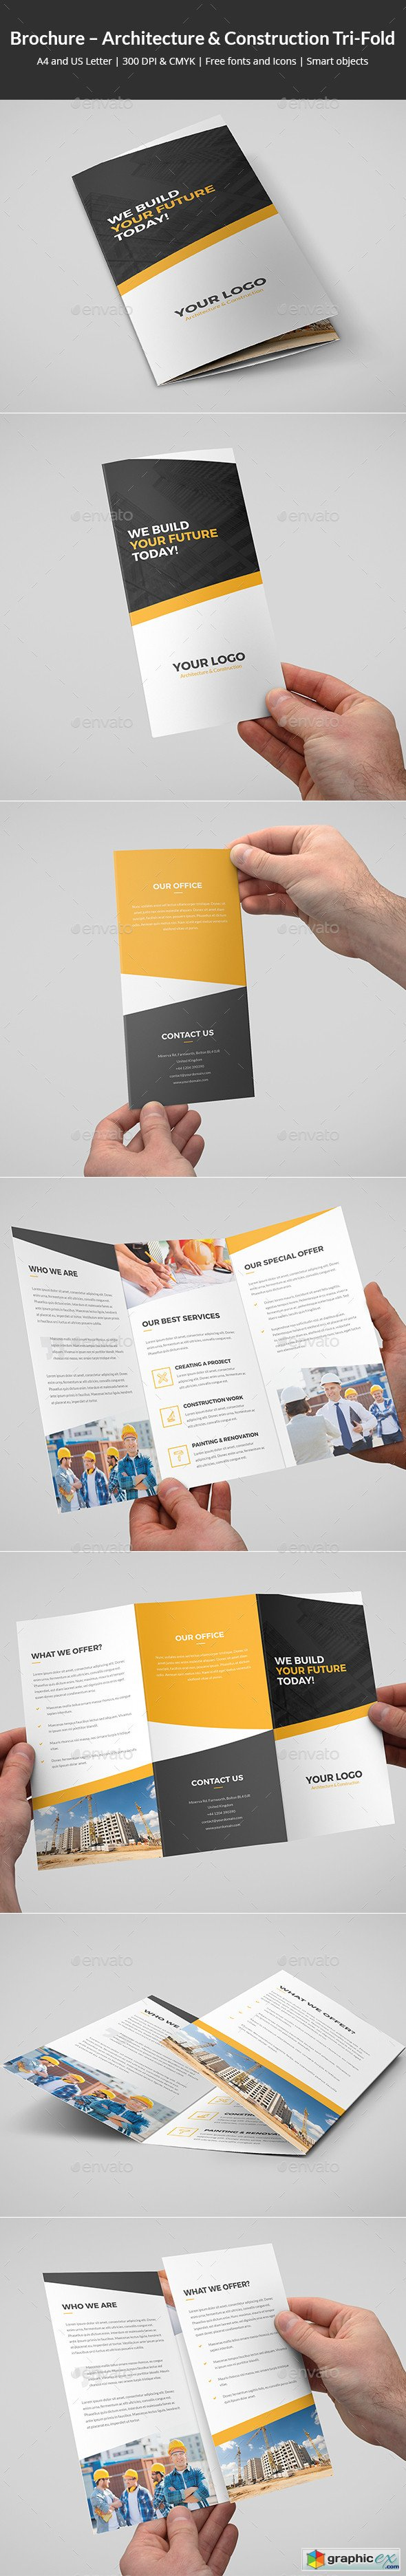 Brochure � Architecture and Construction Tri-Fold